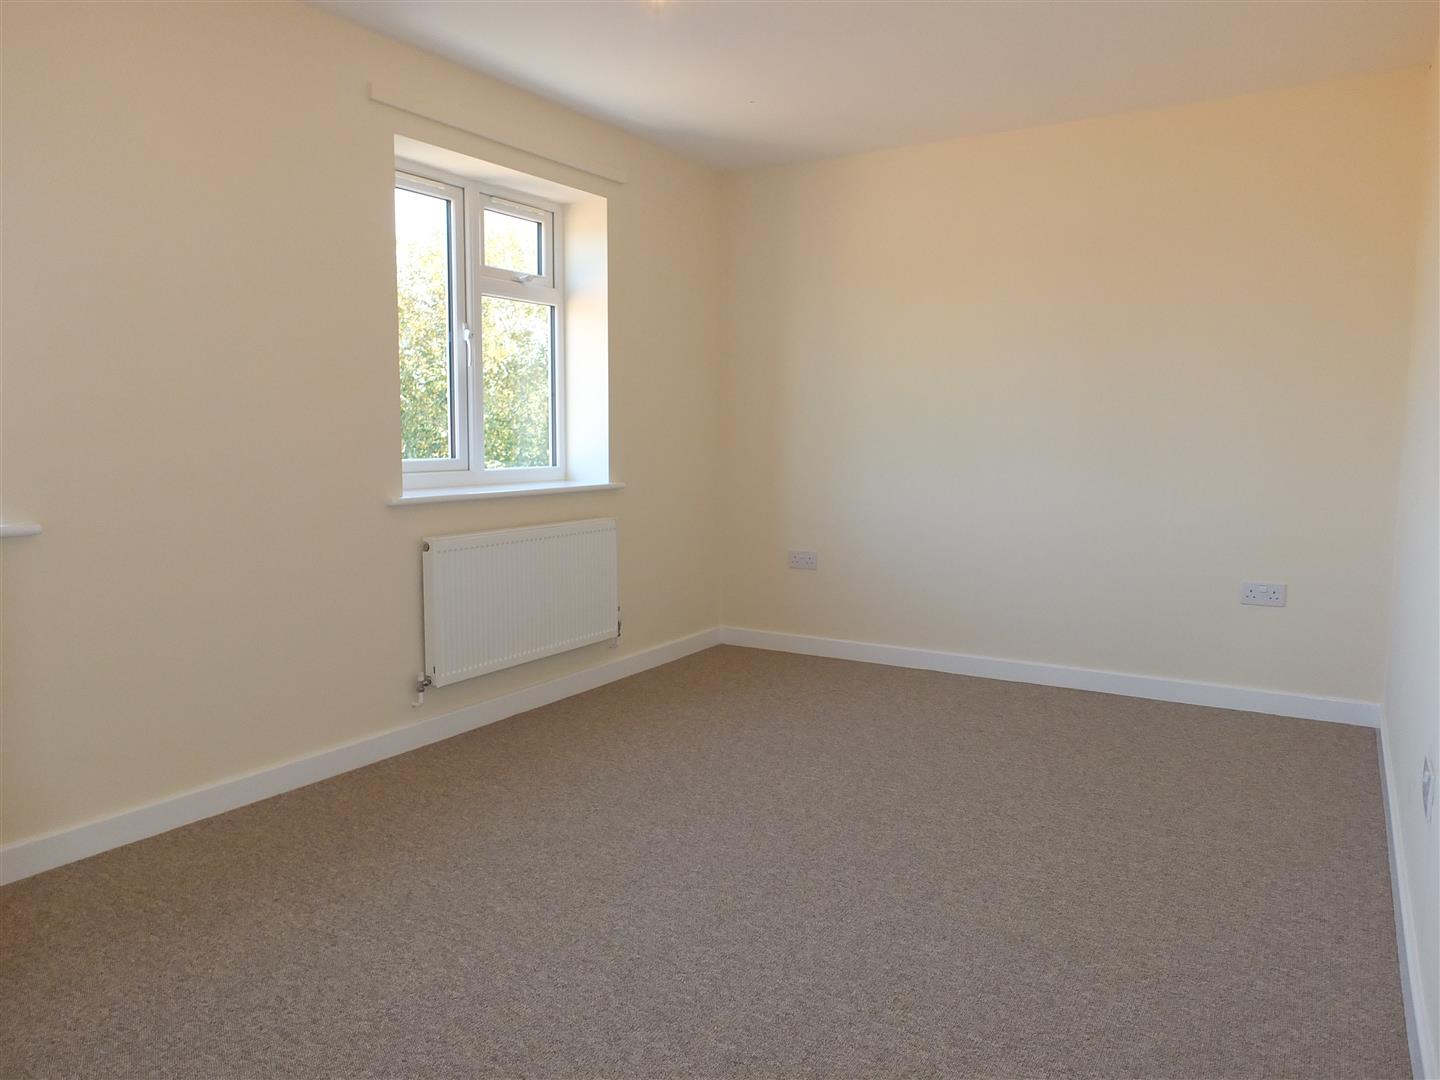 2 bed house to rent in Little London, Long Sutton Spalding 5